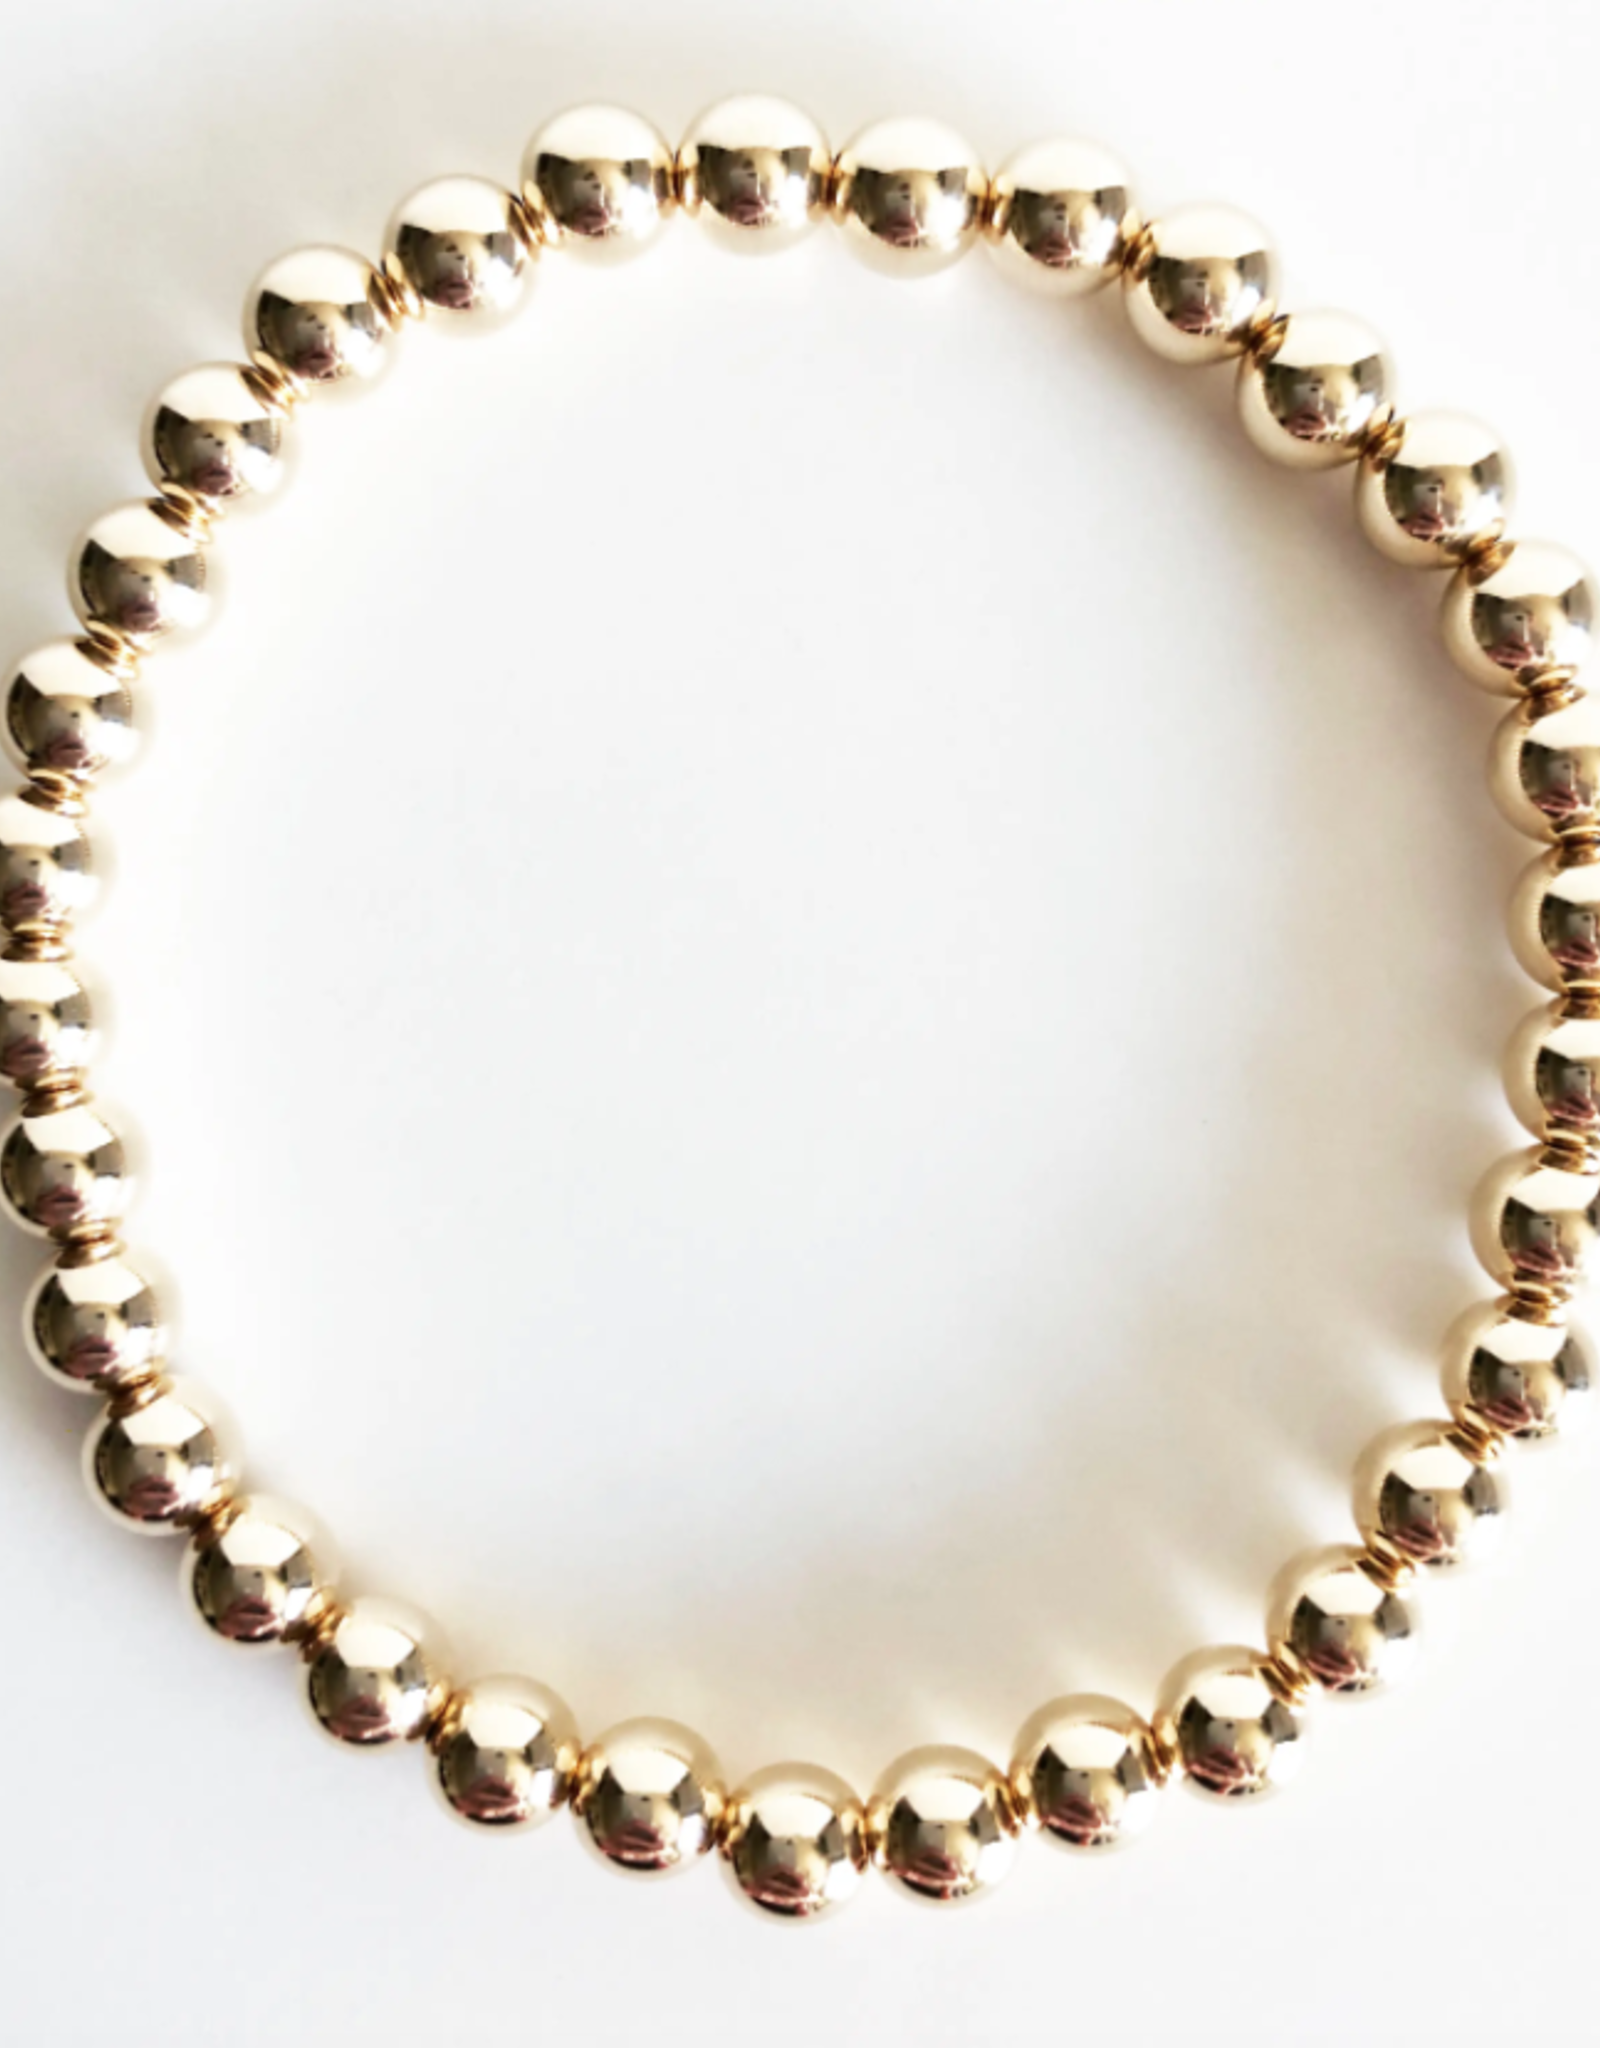 Gold Filled Beaded Bracelet